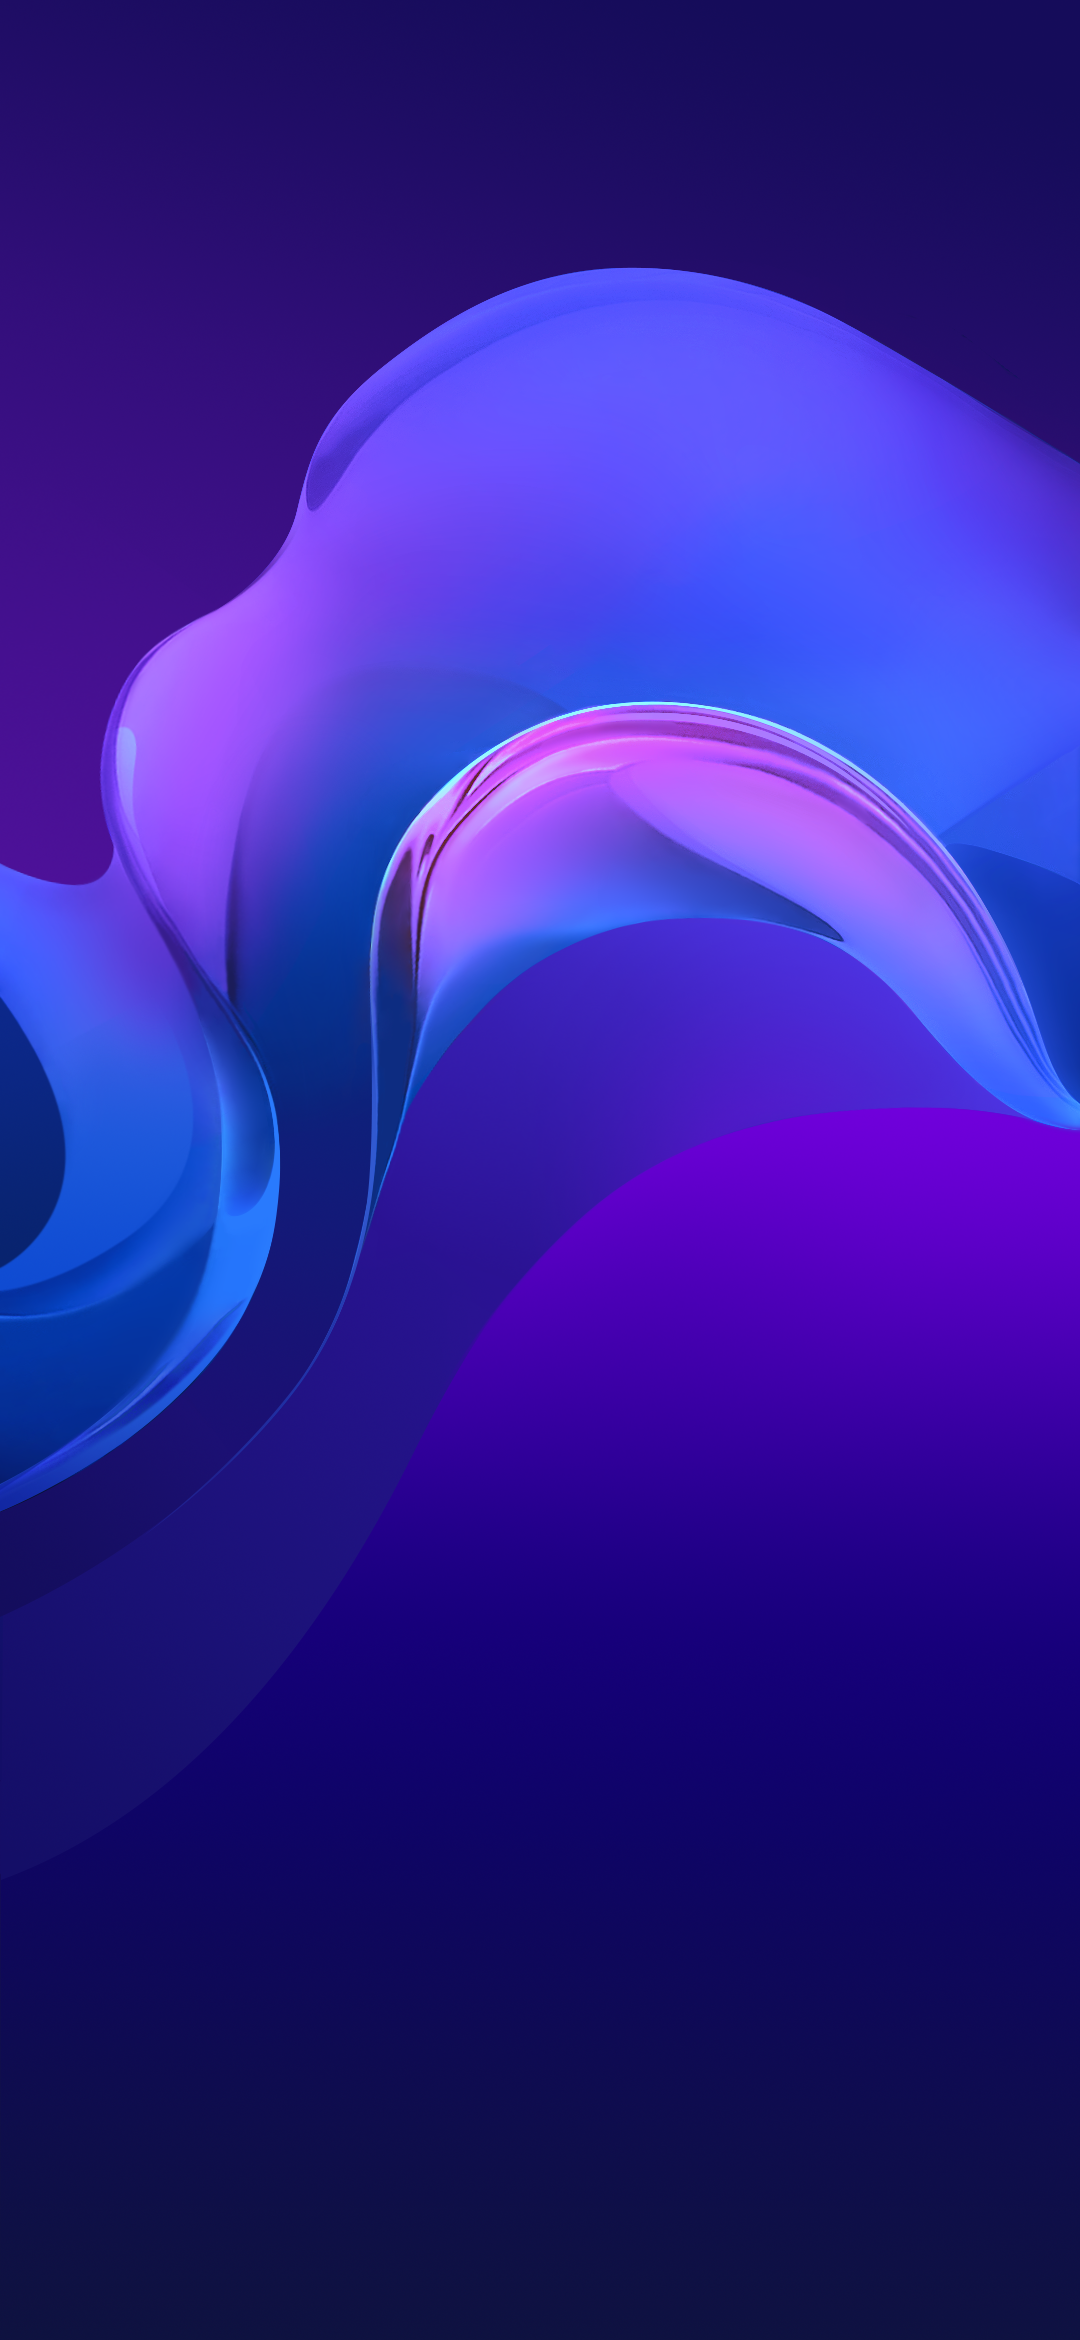 Huawei Community Wallpapers Abstract Wallpaper Collection 1